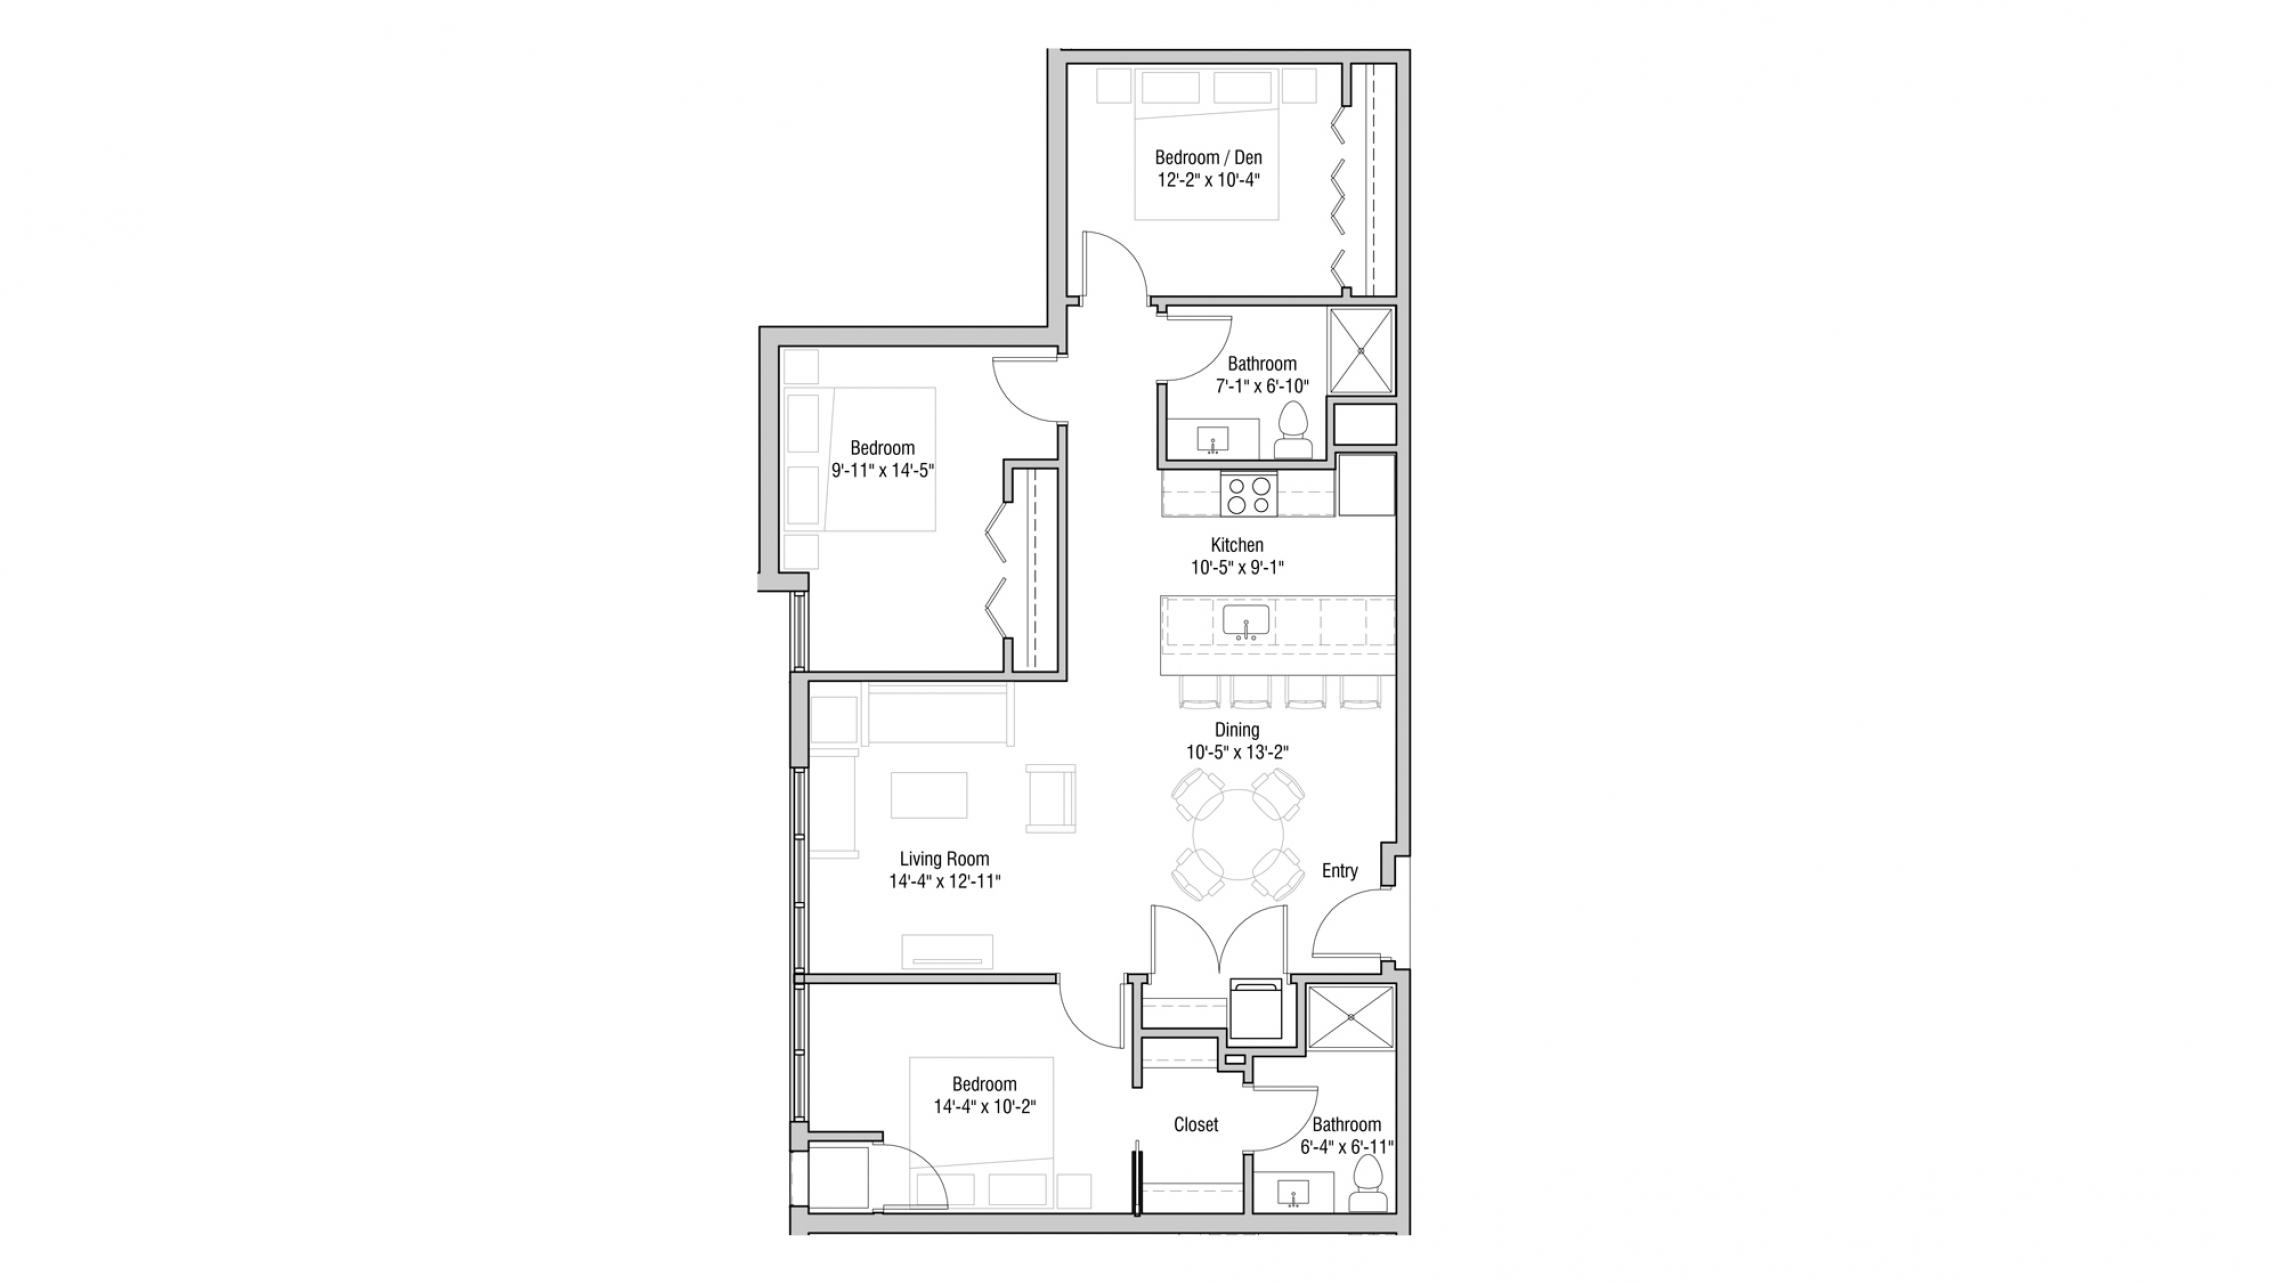 ULI Quarter Row 310 - Two Bedroom, Two Bathroom